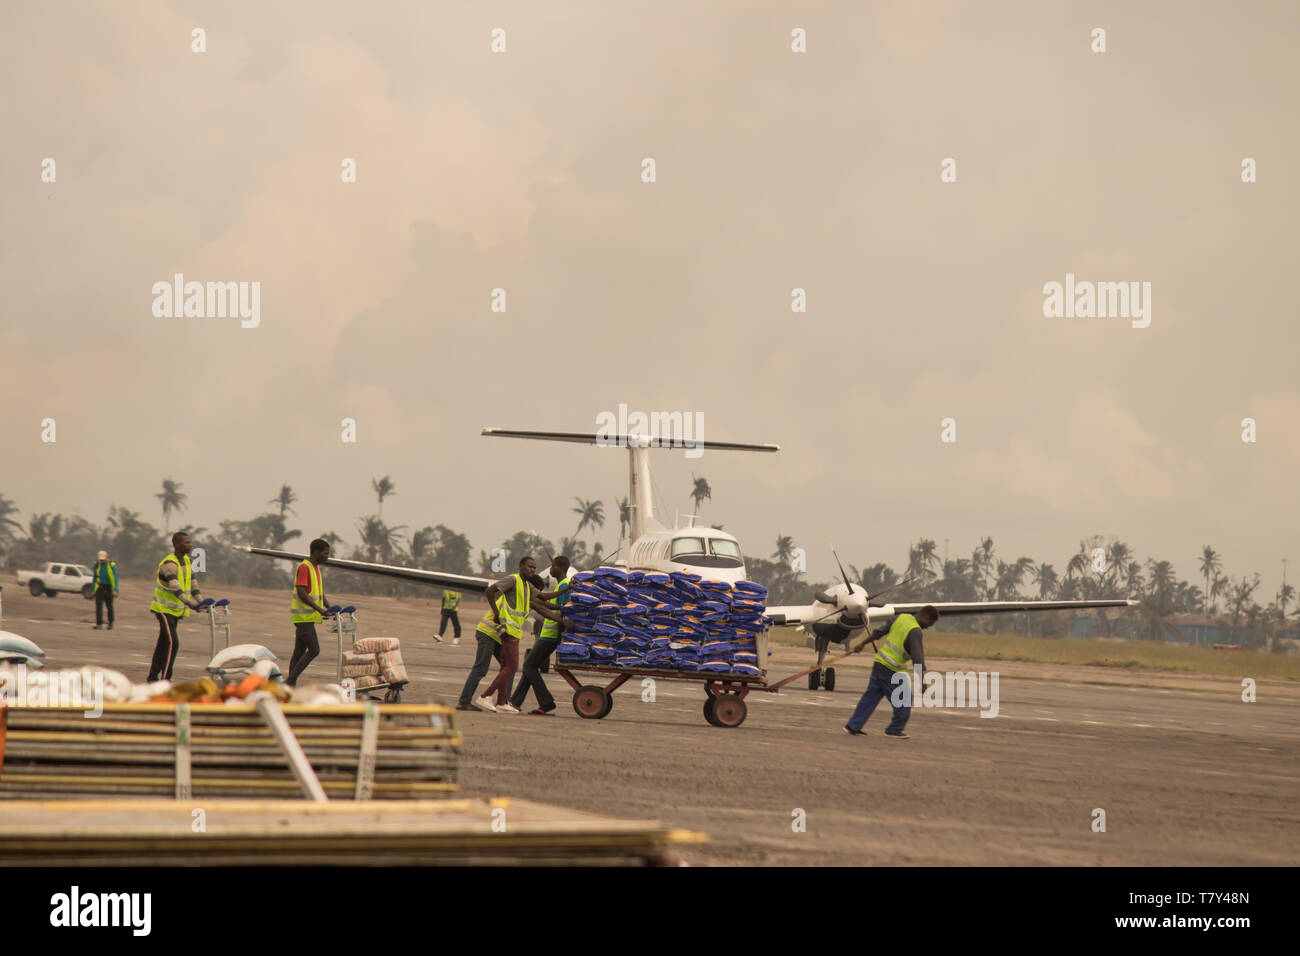 Aftermath Cyclone Idai and Cyclone Kenneth in Mozambique and Zimbabwe, humanitarian workers preparing humanitarian help to deliver for affected people - Stock Image